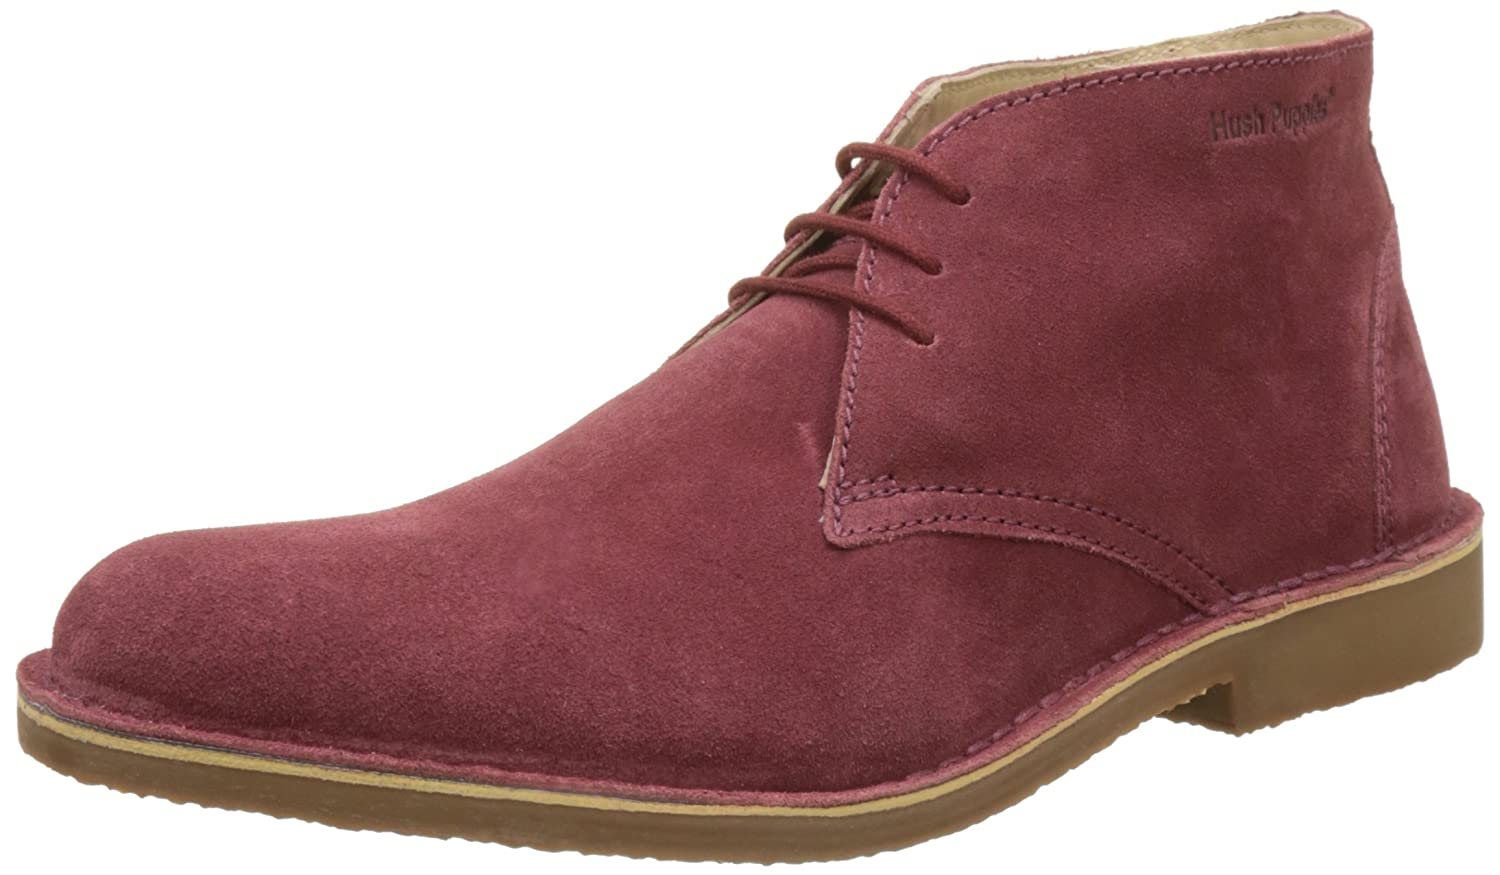 Hush Puppies Lord - Botines Desert Hombre: Amazon.es: Zapatos y complementos